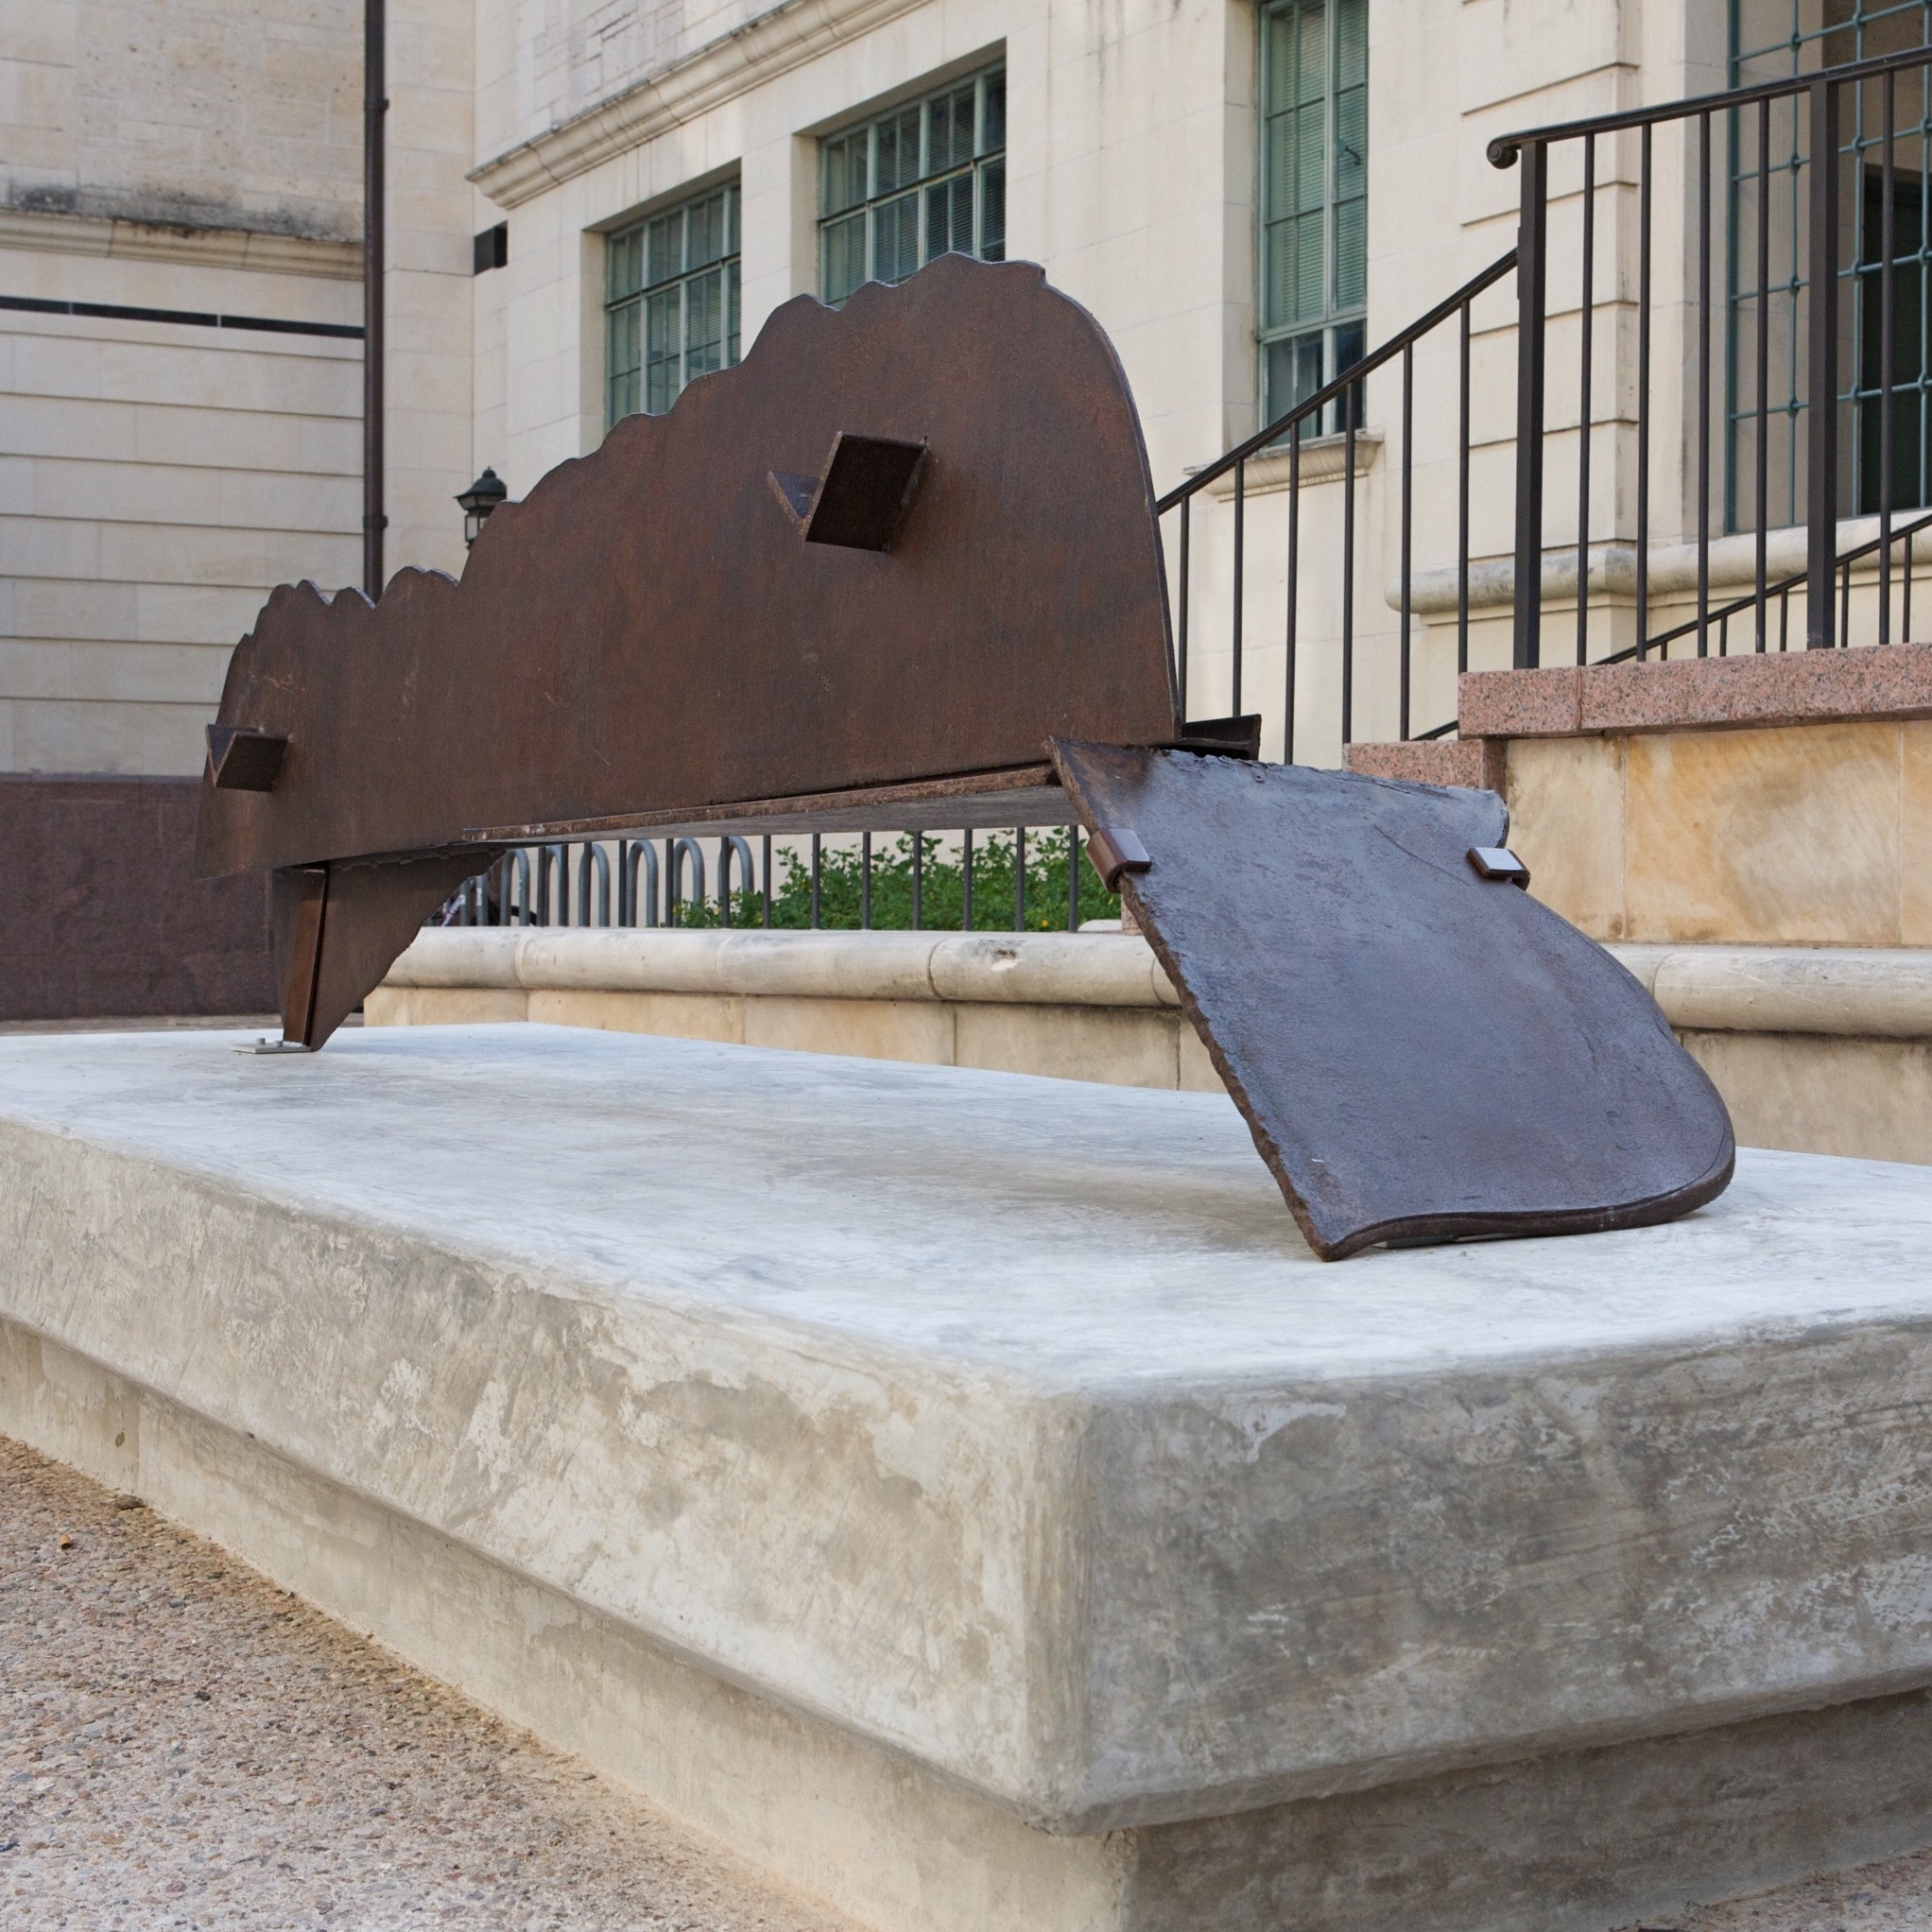 A horizontal steel sculpture which